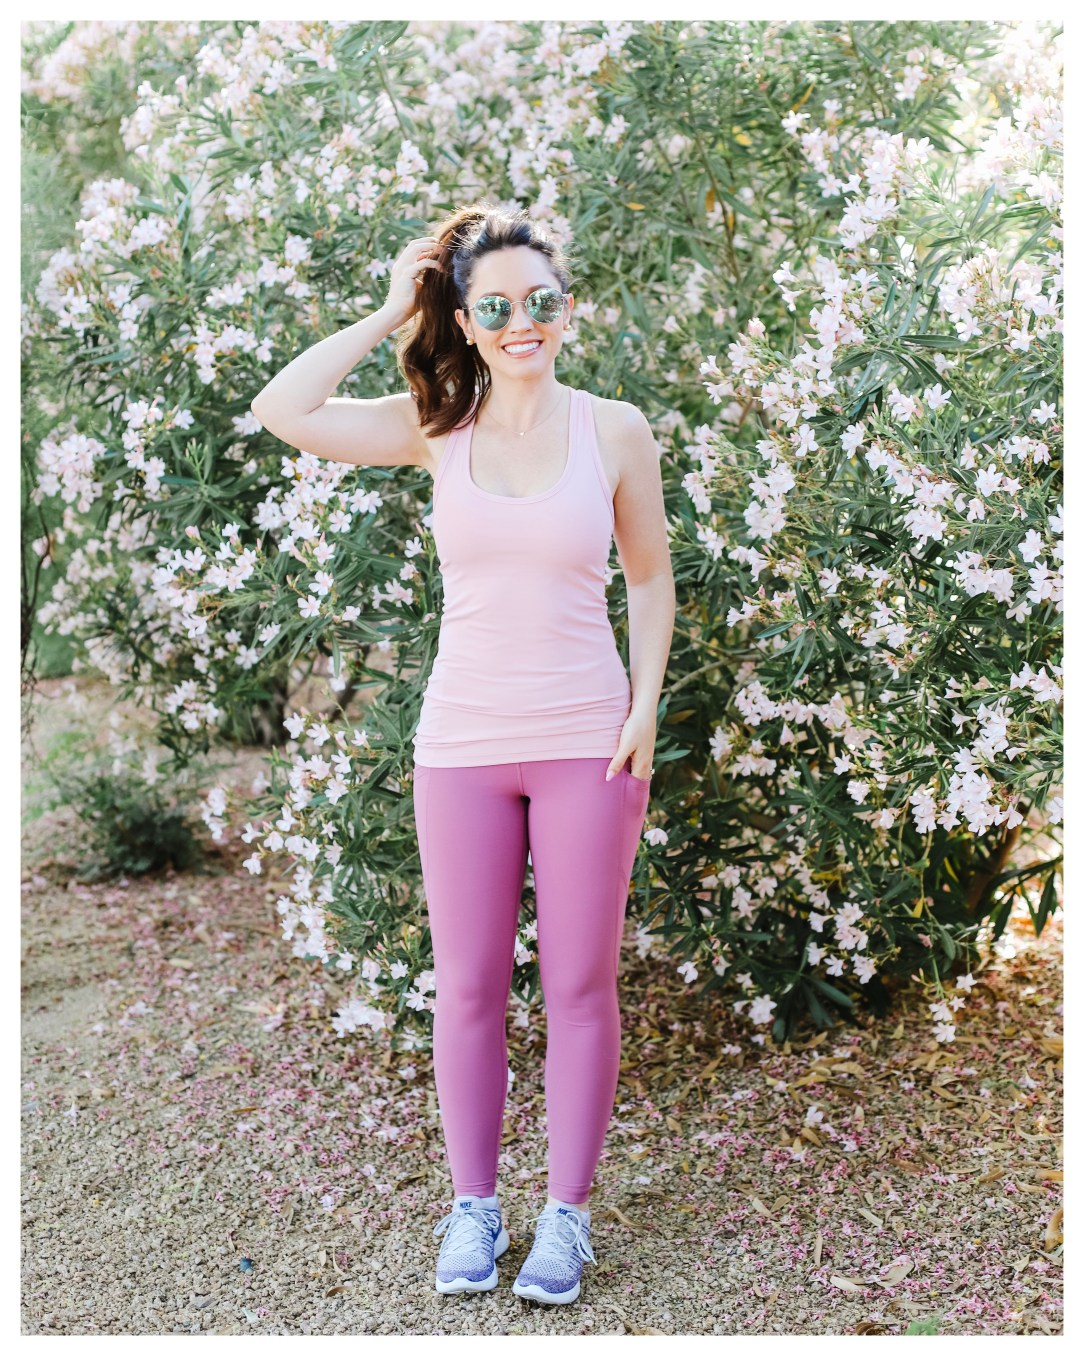 FiveFootFeminine in Yogalicious Active Wear